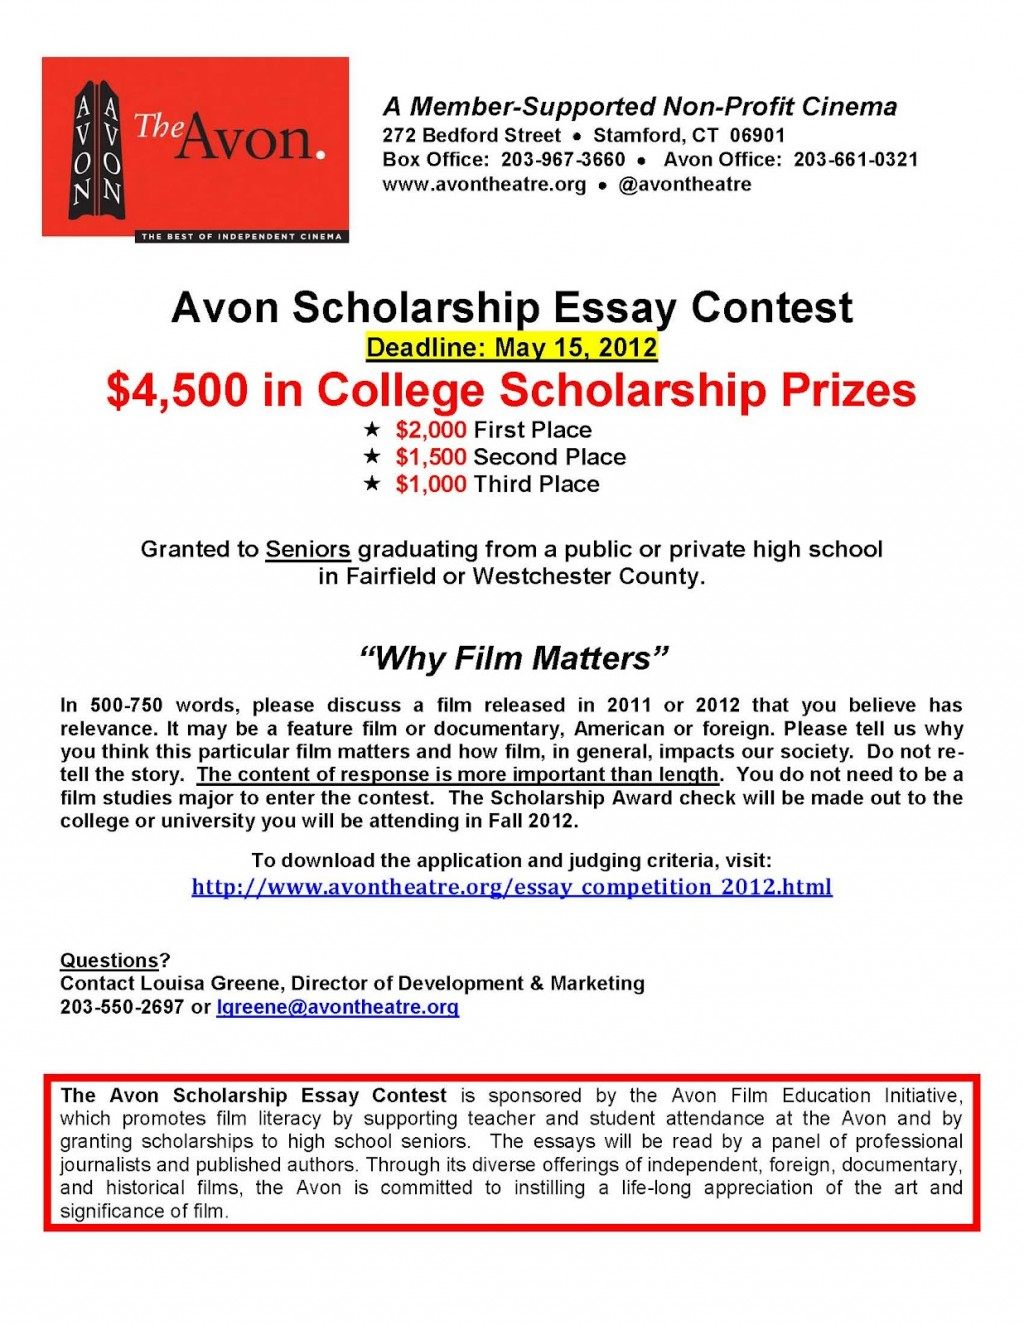 026 No Essay Scholarships For High School Seniors College Scholarship Prowler Free Avonscholarshipessaycontest2012 In Texas California Class Of Rare 2018 Short Large